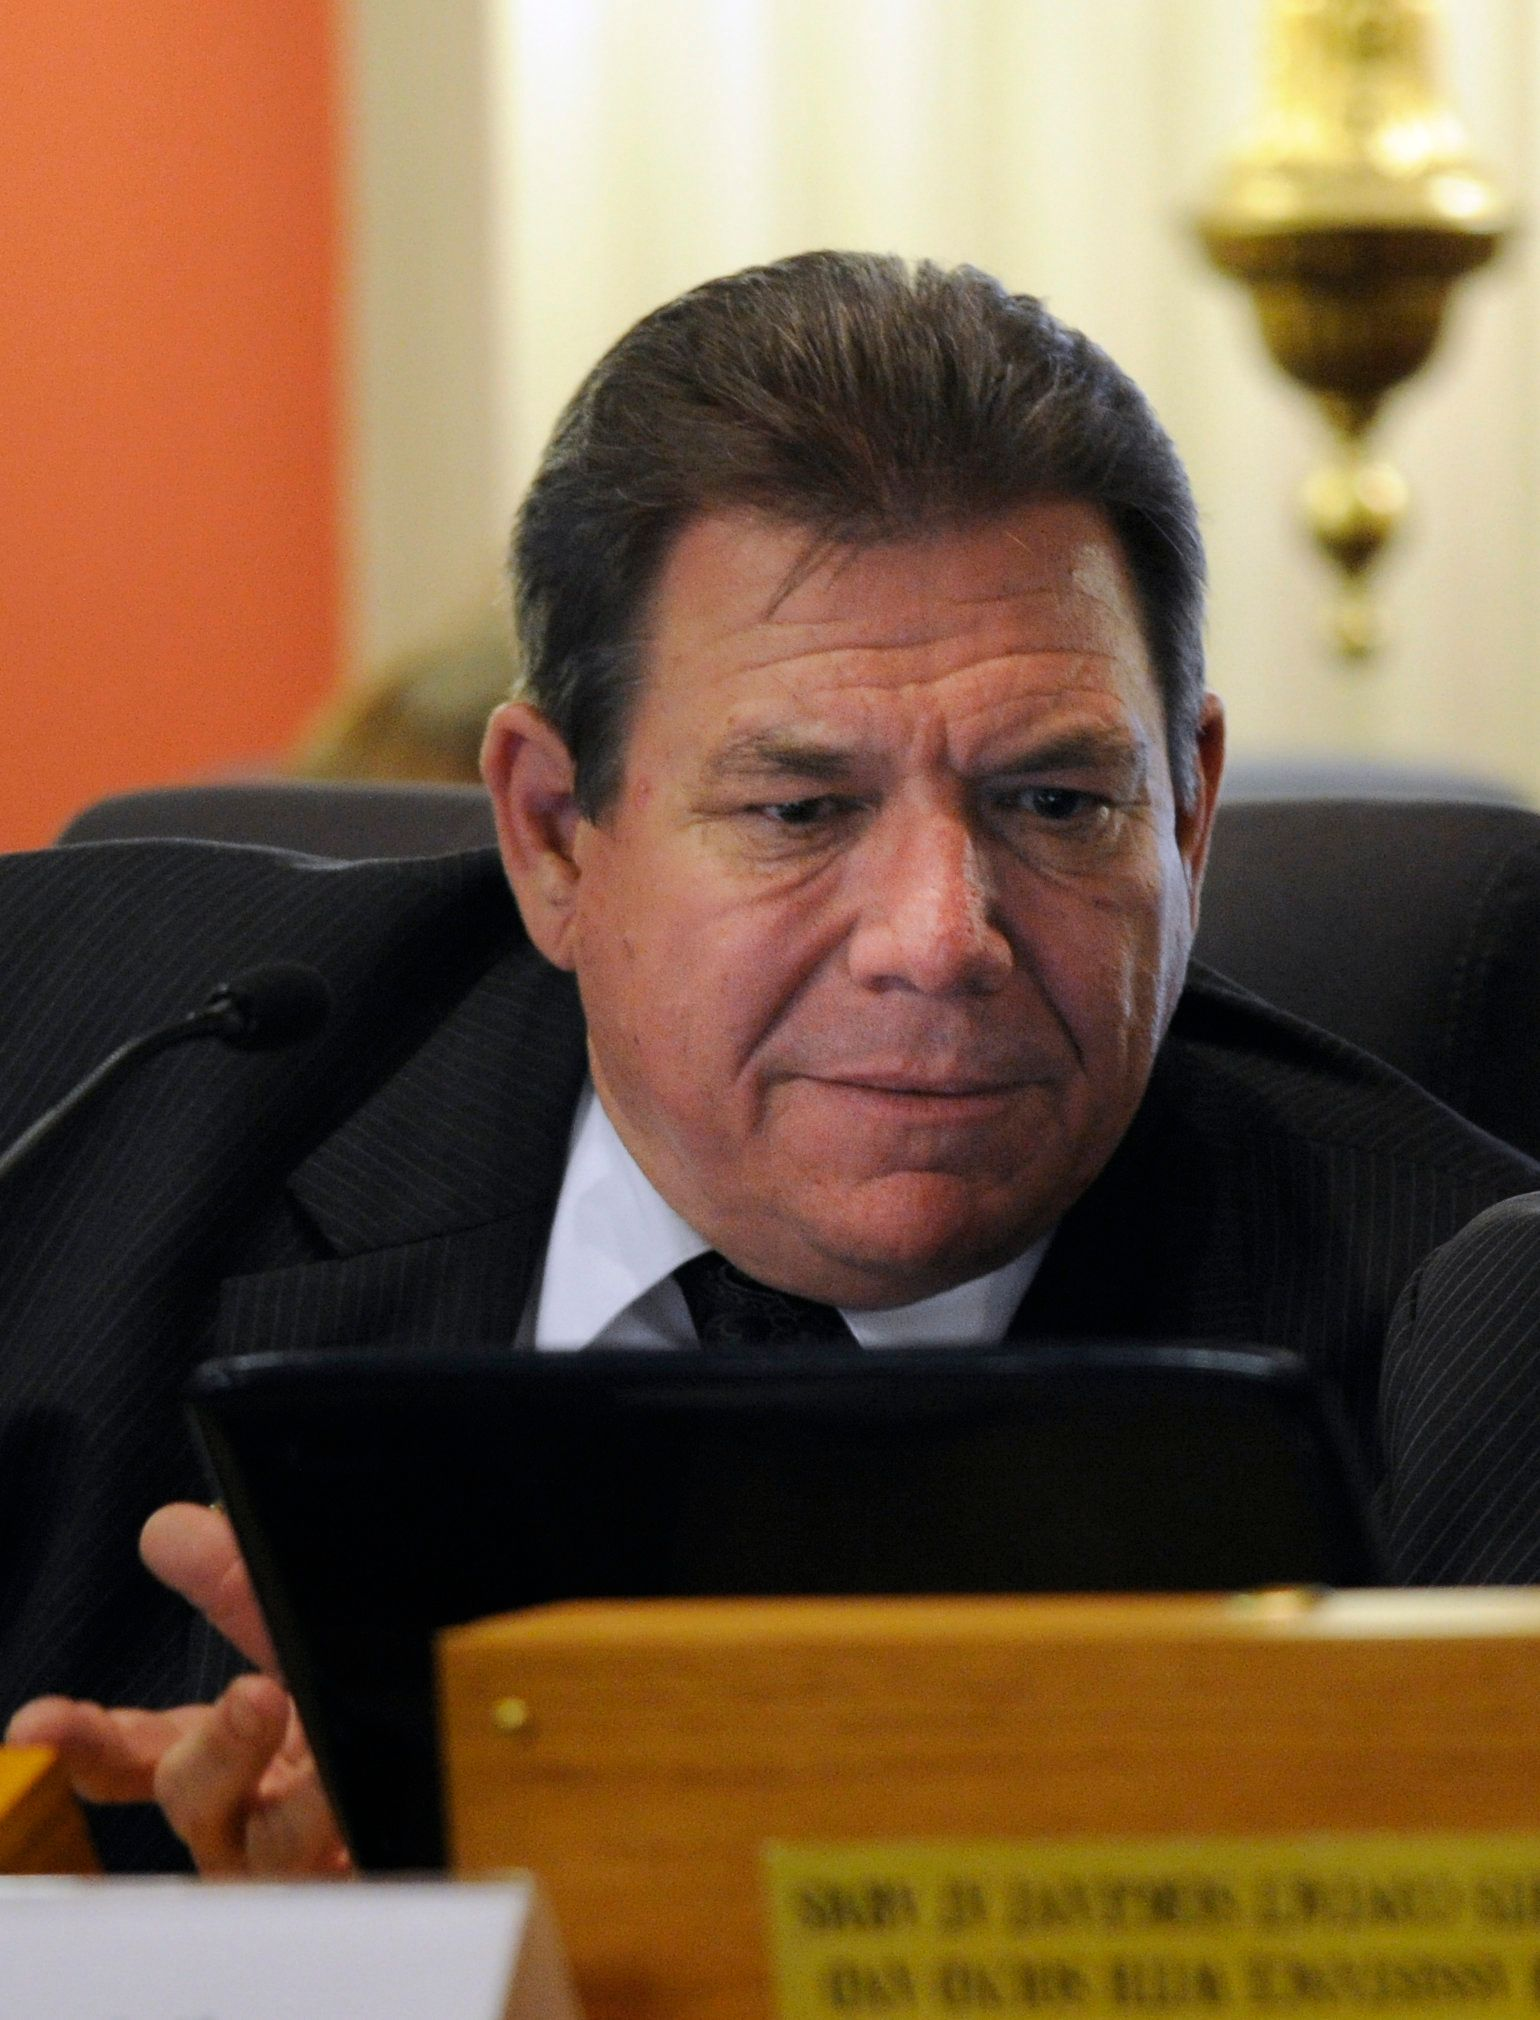 Sen. Ray Scott is seen in his previous role as a state representative in this 2012 file photo.